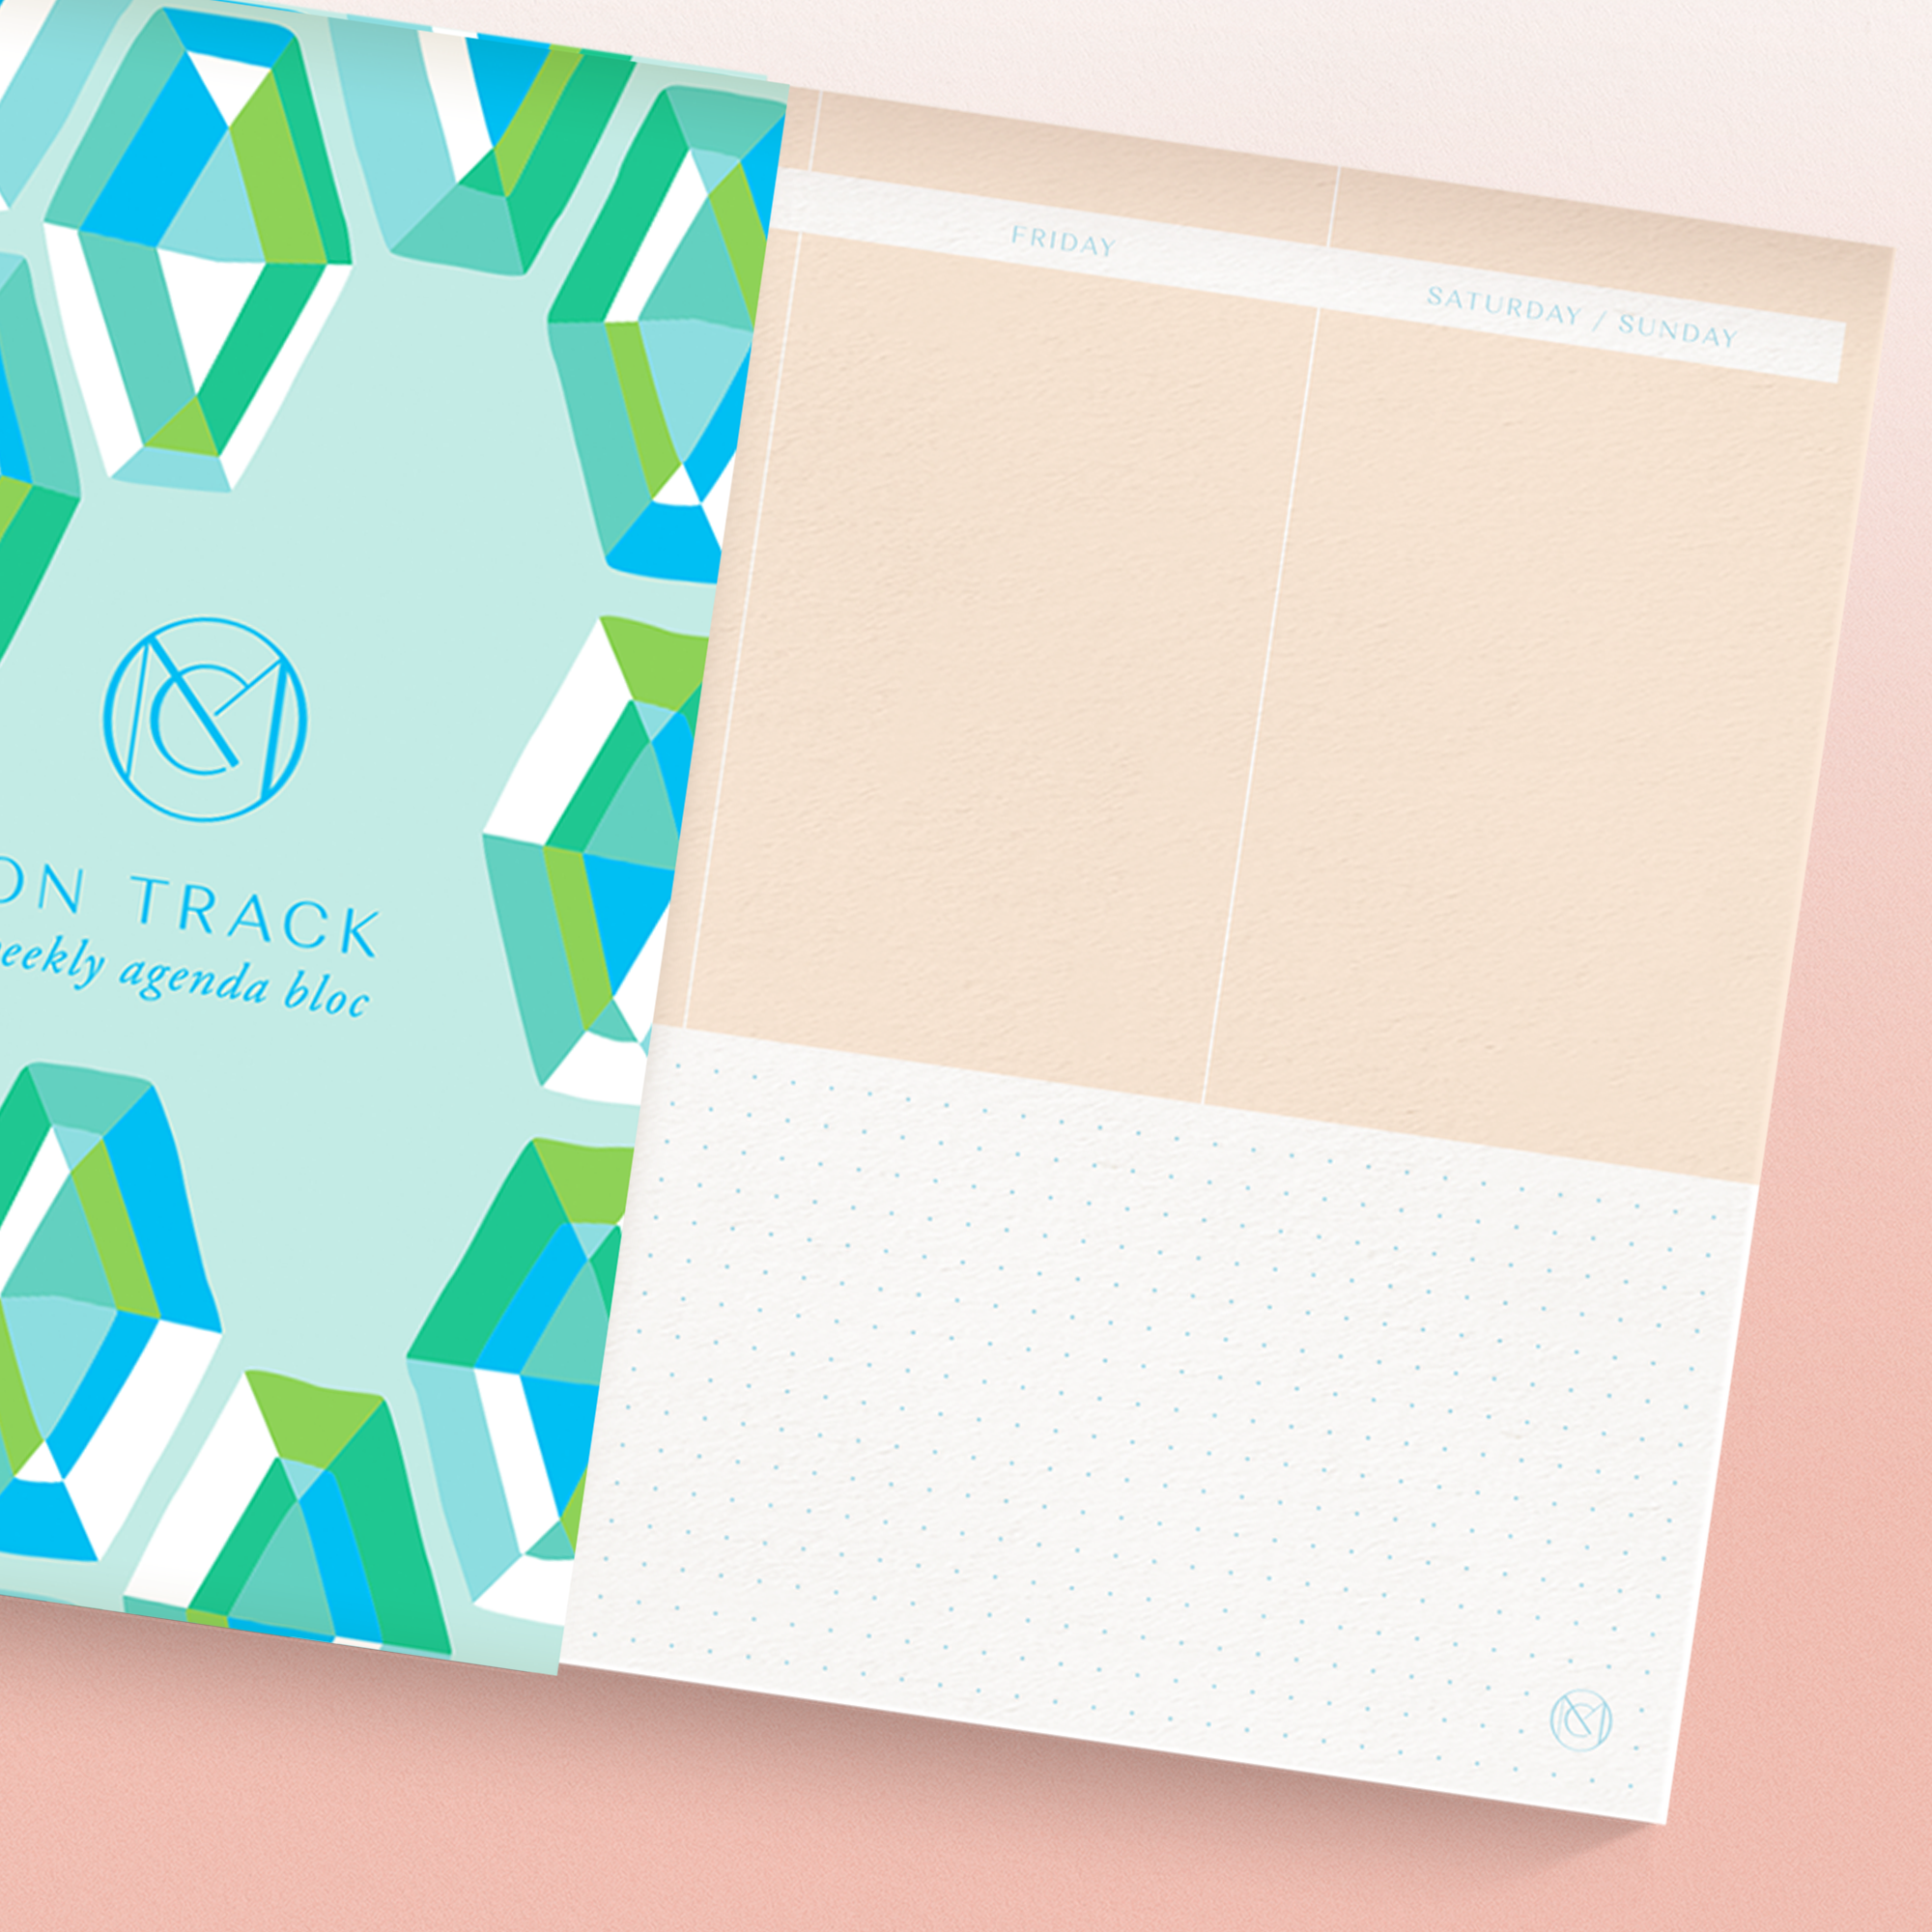 ON TRACK - Undated Weekly Planner - GLASSHOUSE